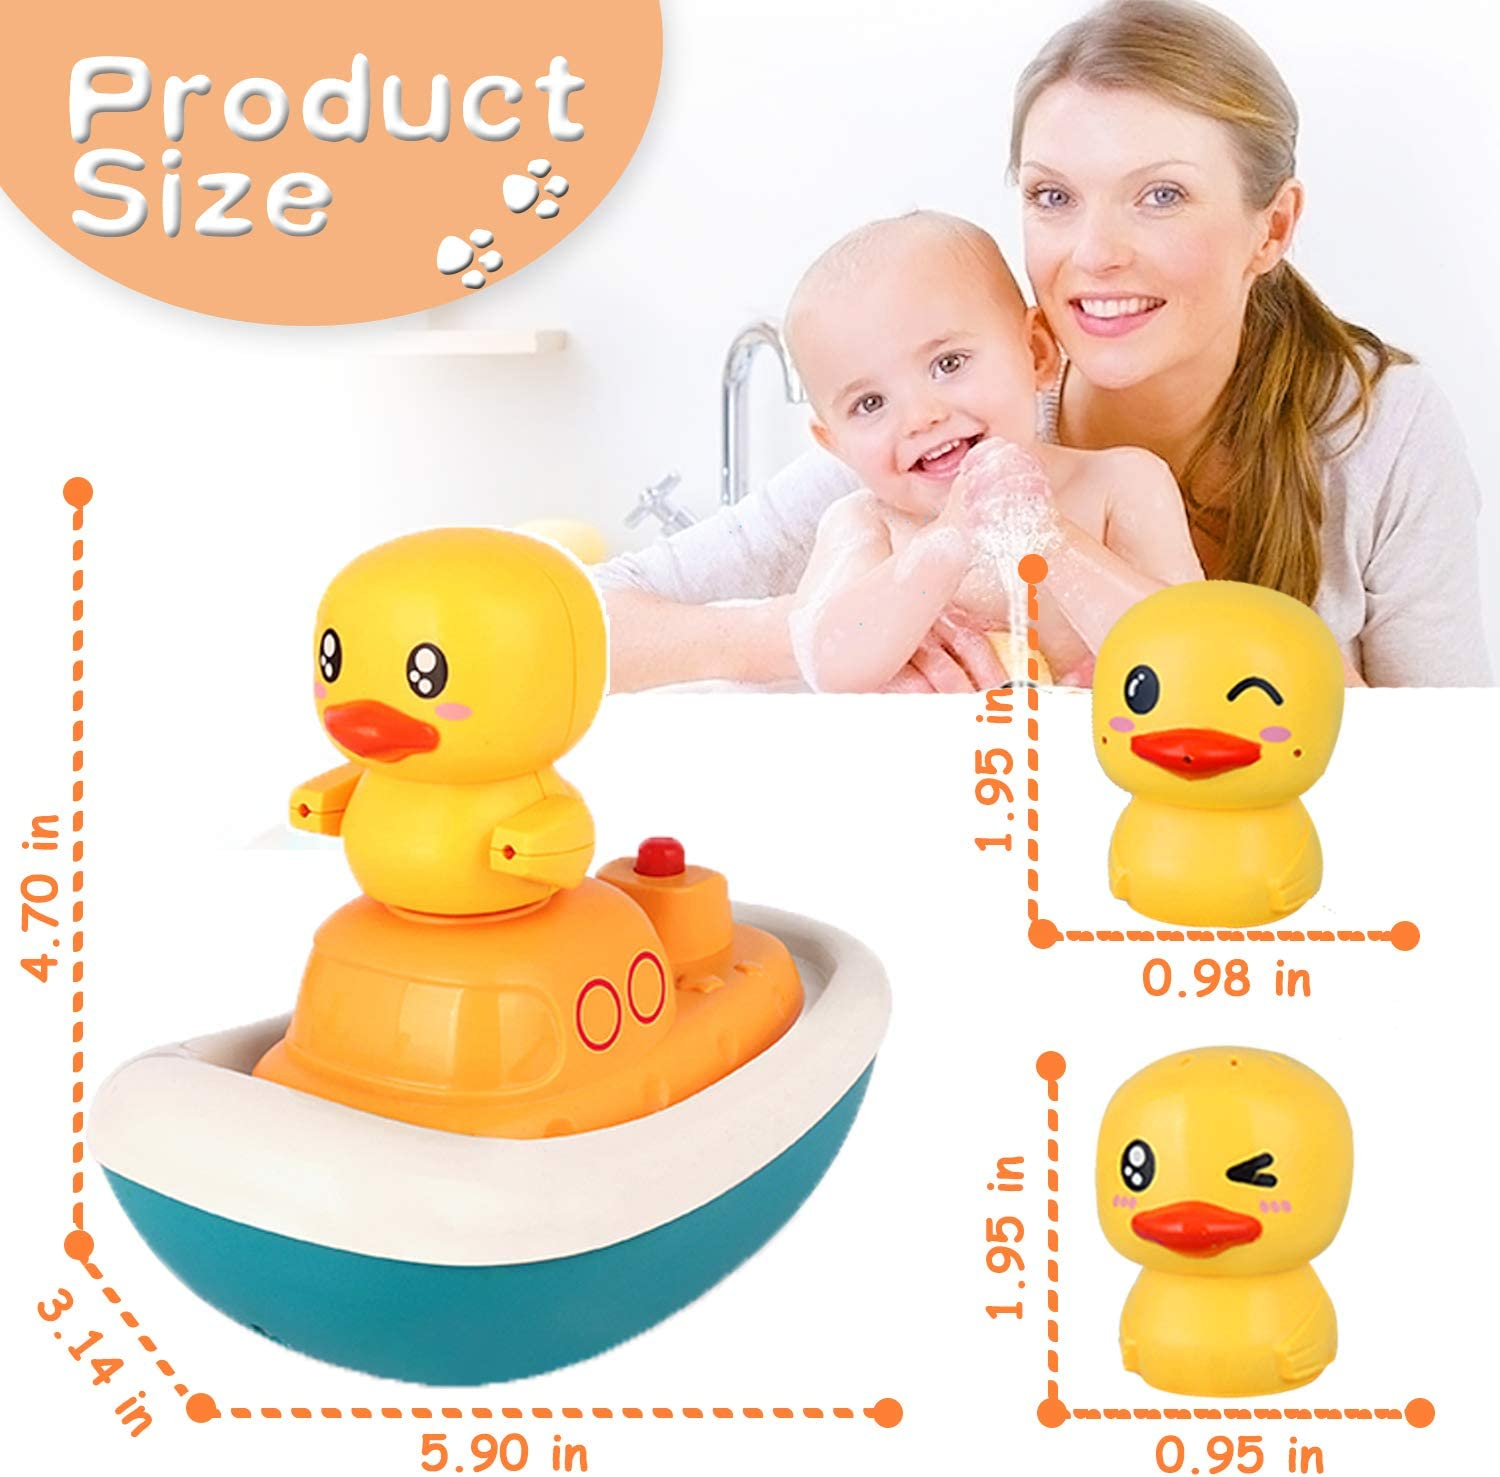 Sprinkler Shower Bathtub Toys for Toddlers Kids Boys Girls,Fun Bath Toys for Toddlers 1-3 Electric Water Spray Toys-Rotate Boat with 3 Fountain Methods Ducks ZHENDUO Baby Bath Toys